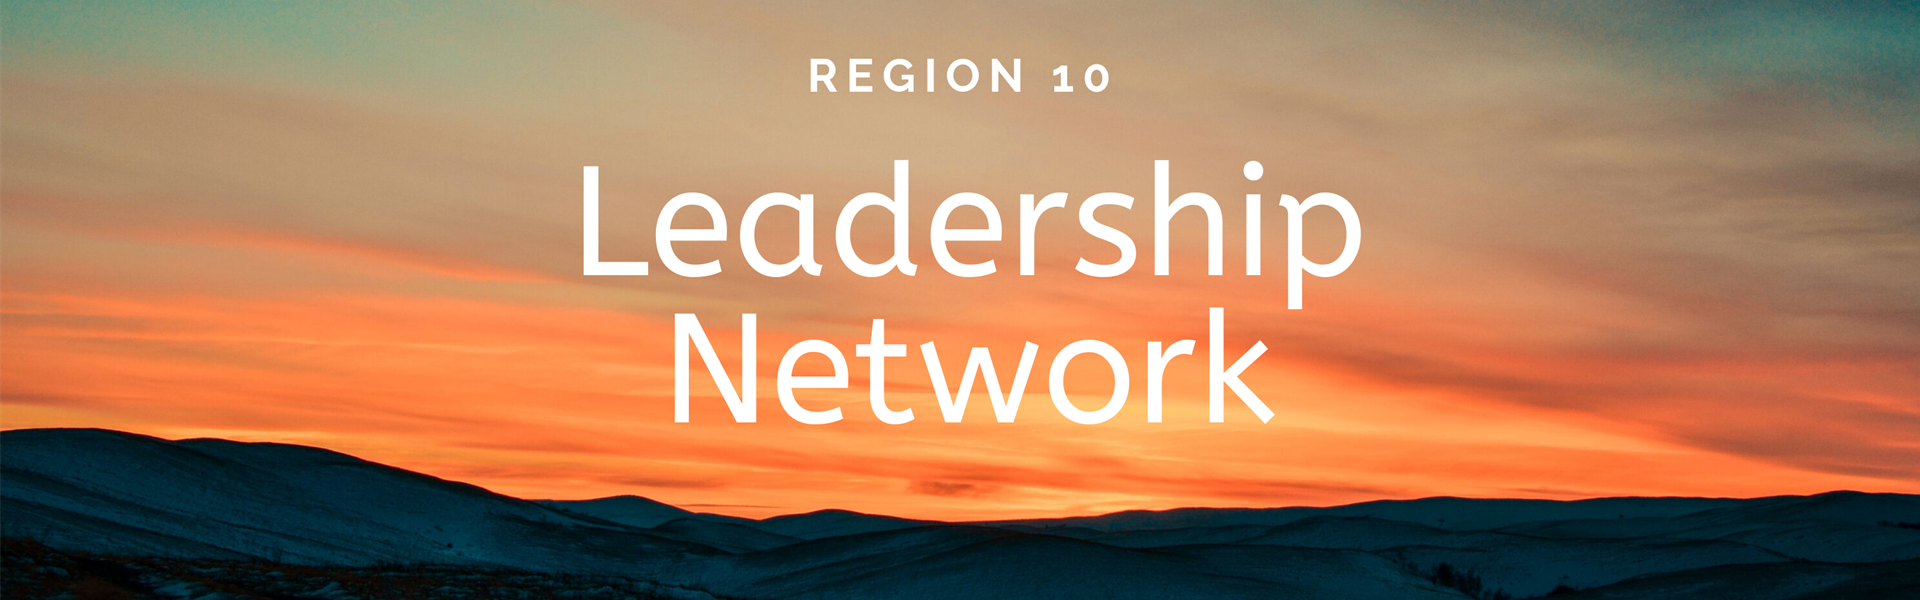 "image of sunrise with white letters reading ""leadership network"""